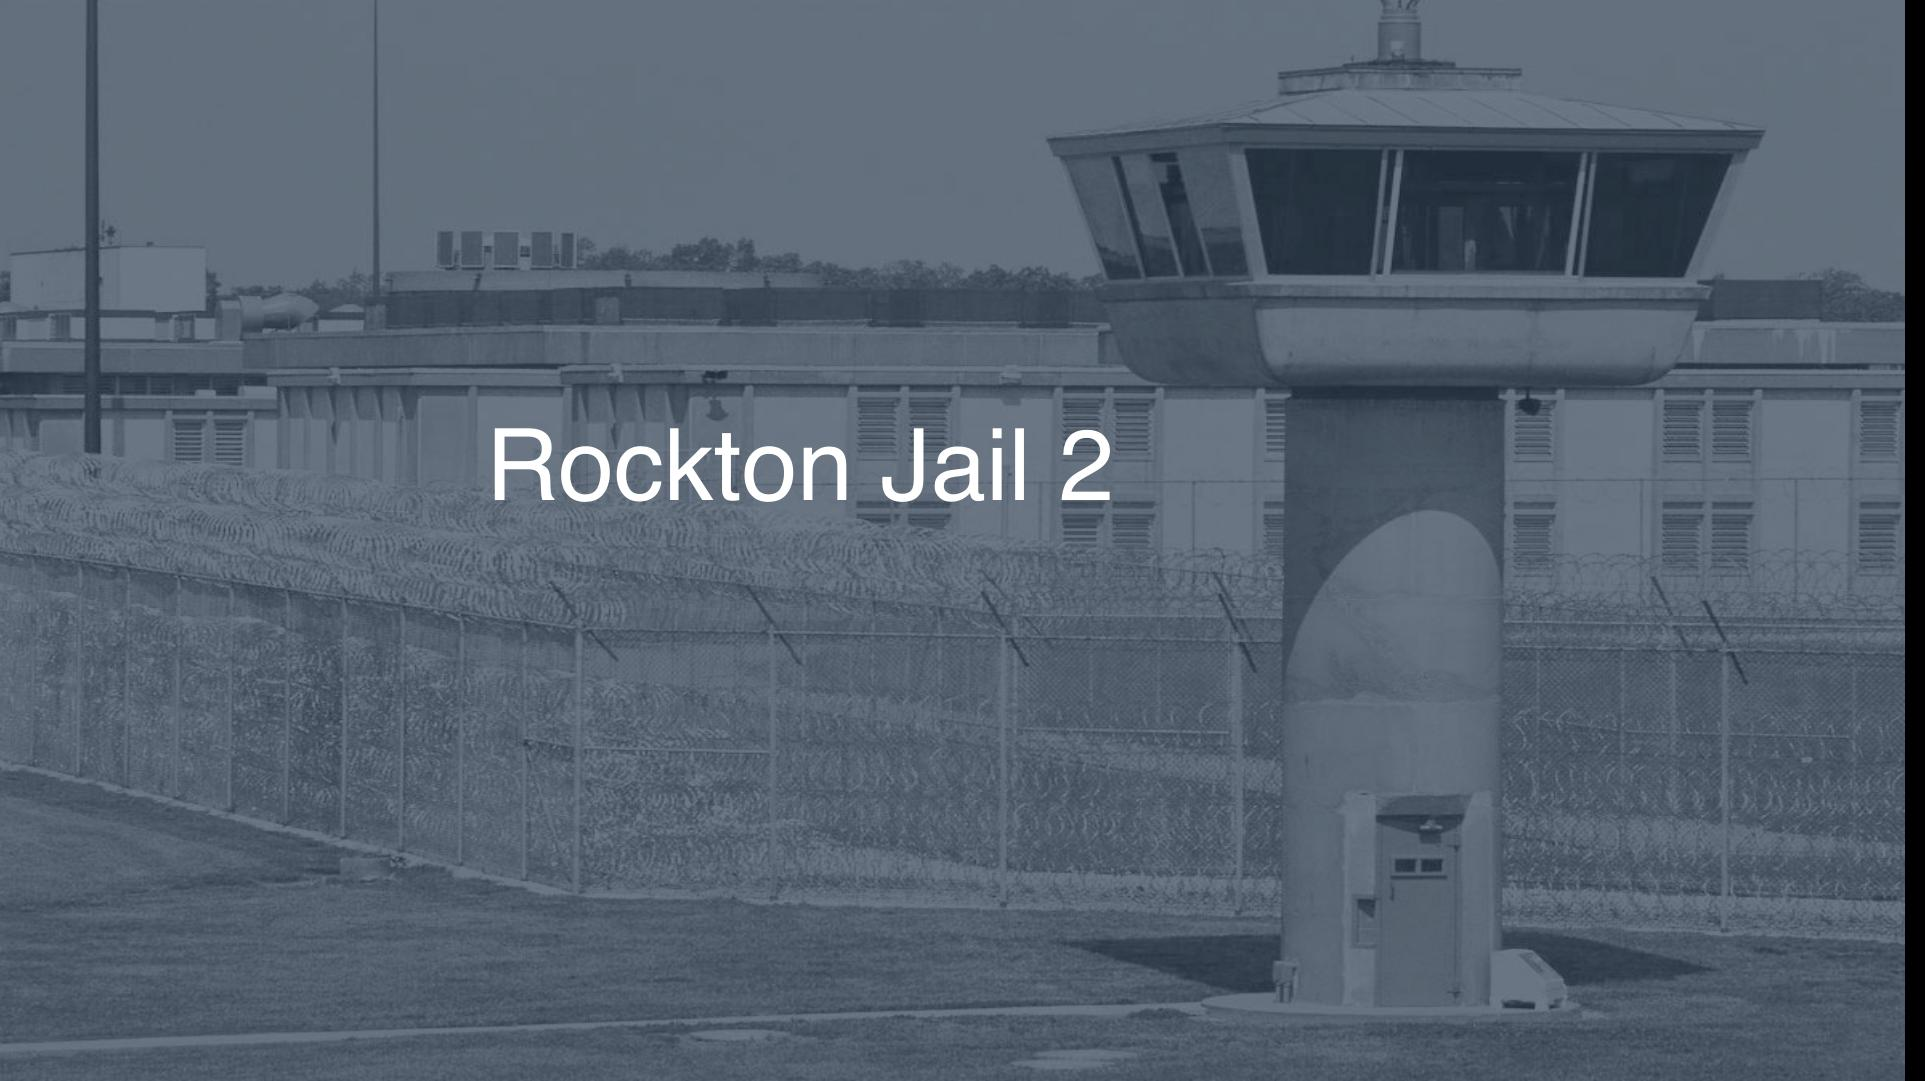 Rockton Jail correctional facility picture